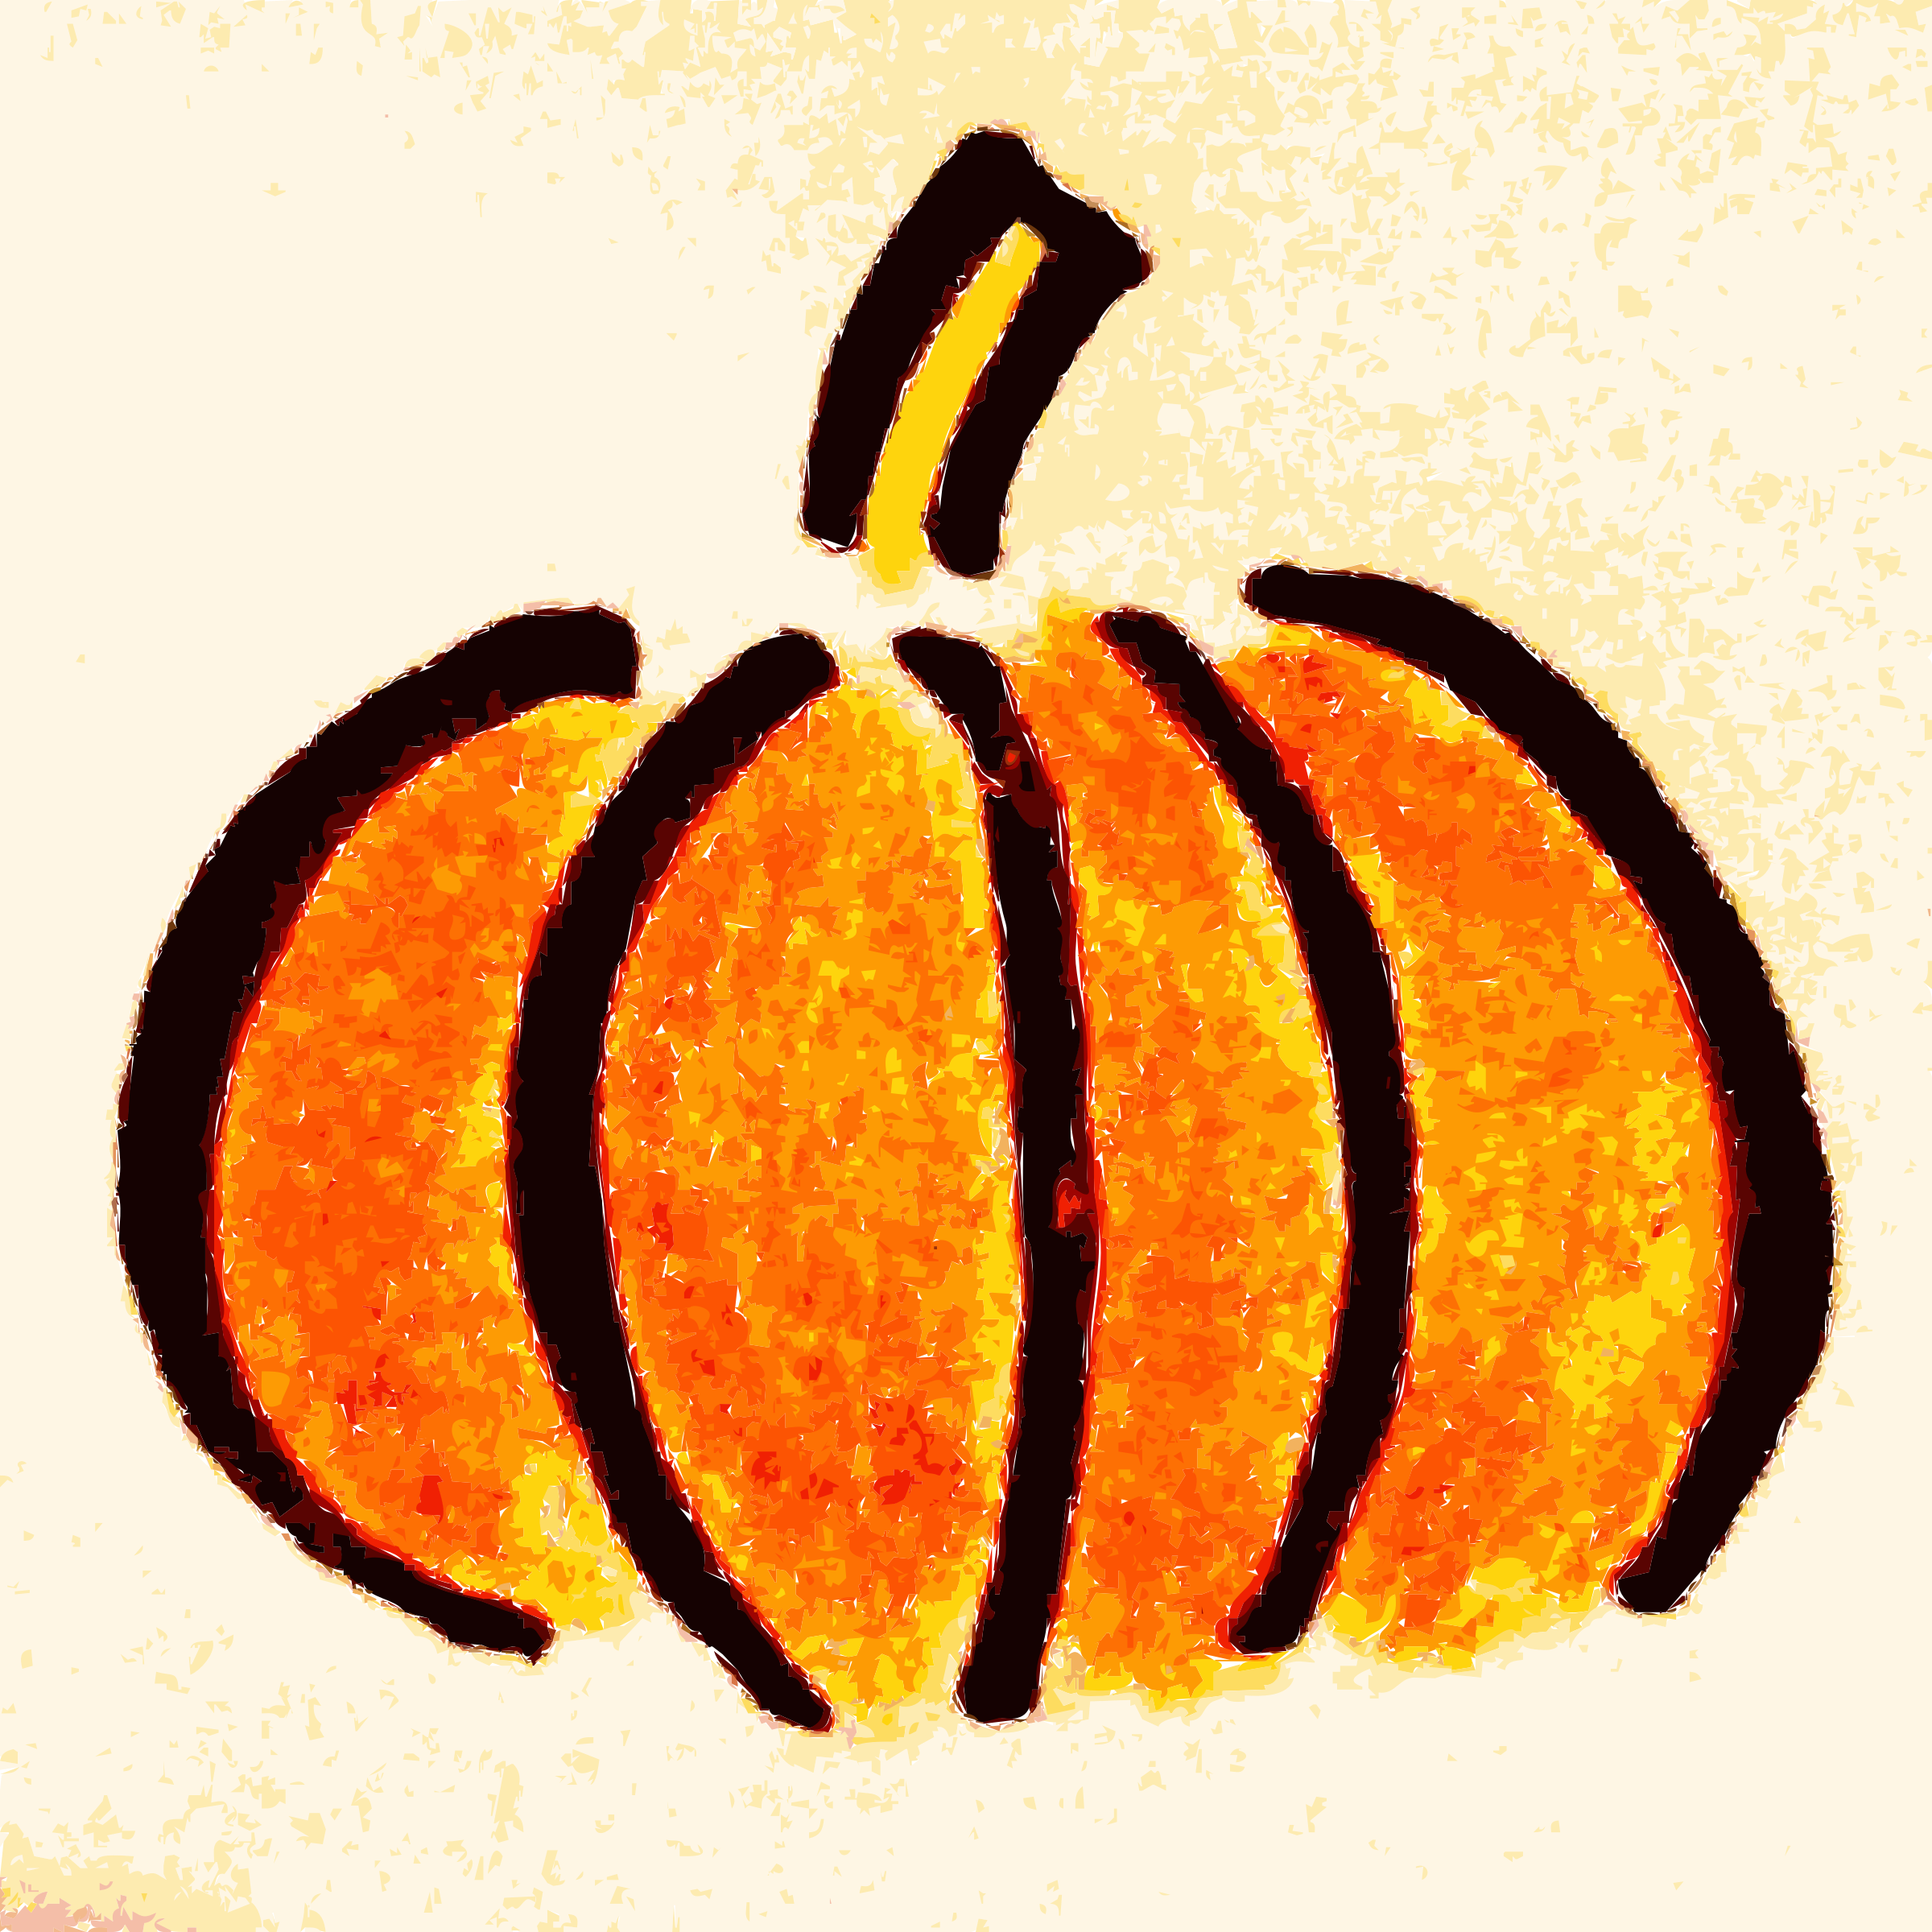 Gourd clipart orange pumpkin Drawn compdclipart com pumpkin pumpkin